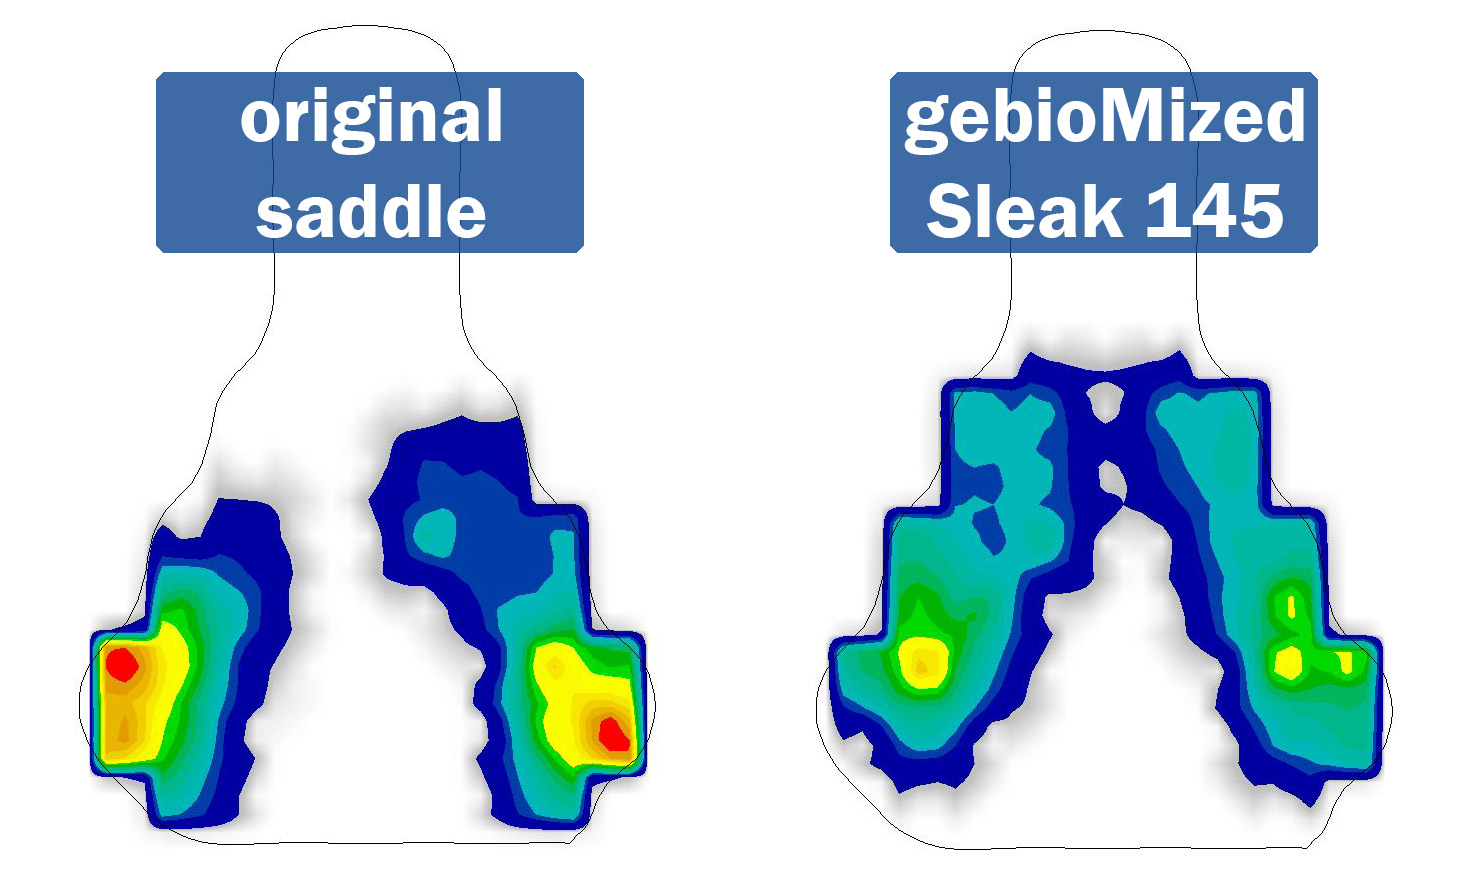 Example: Pressure mapping of the original saddle vs. gebioMized Sleak